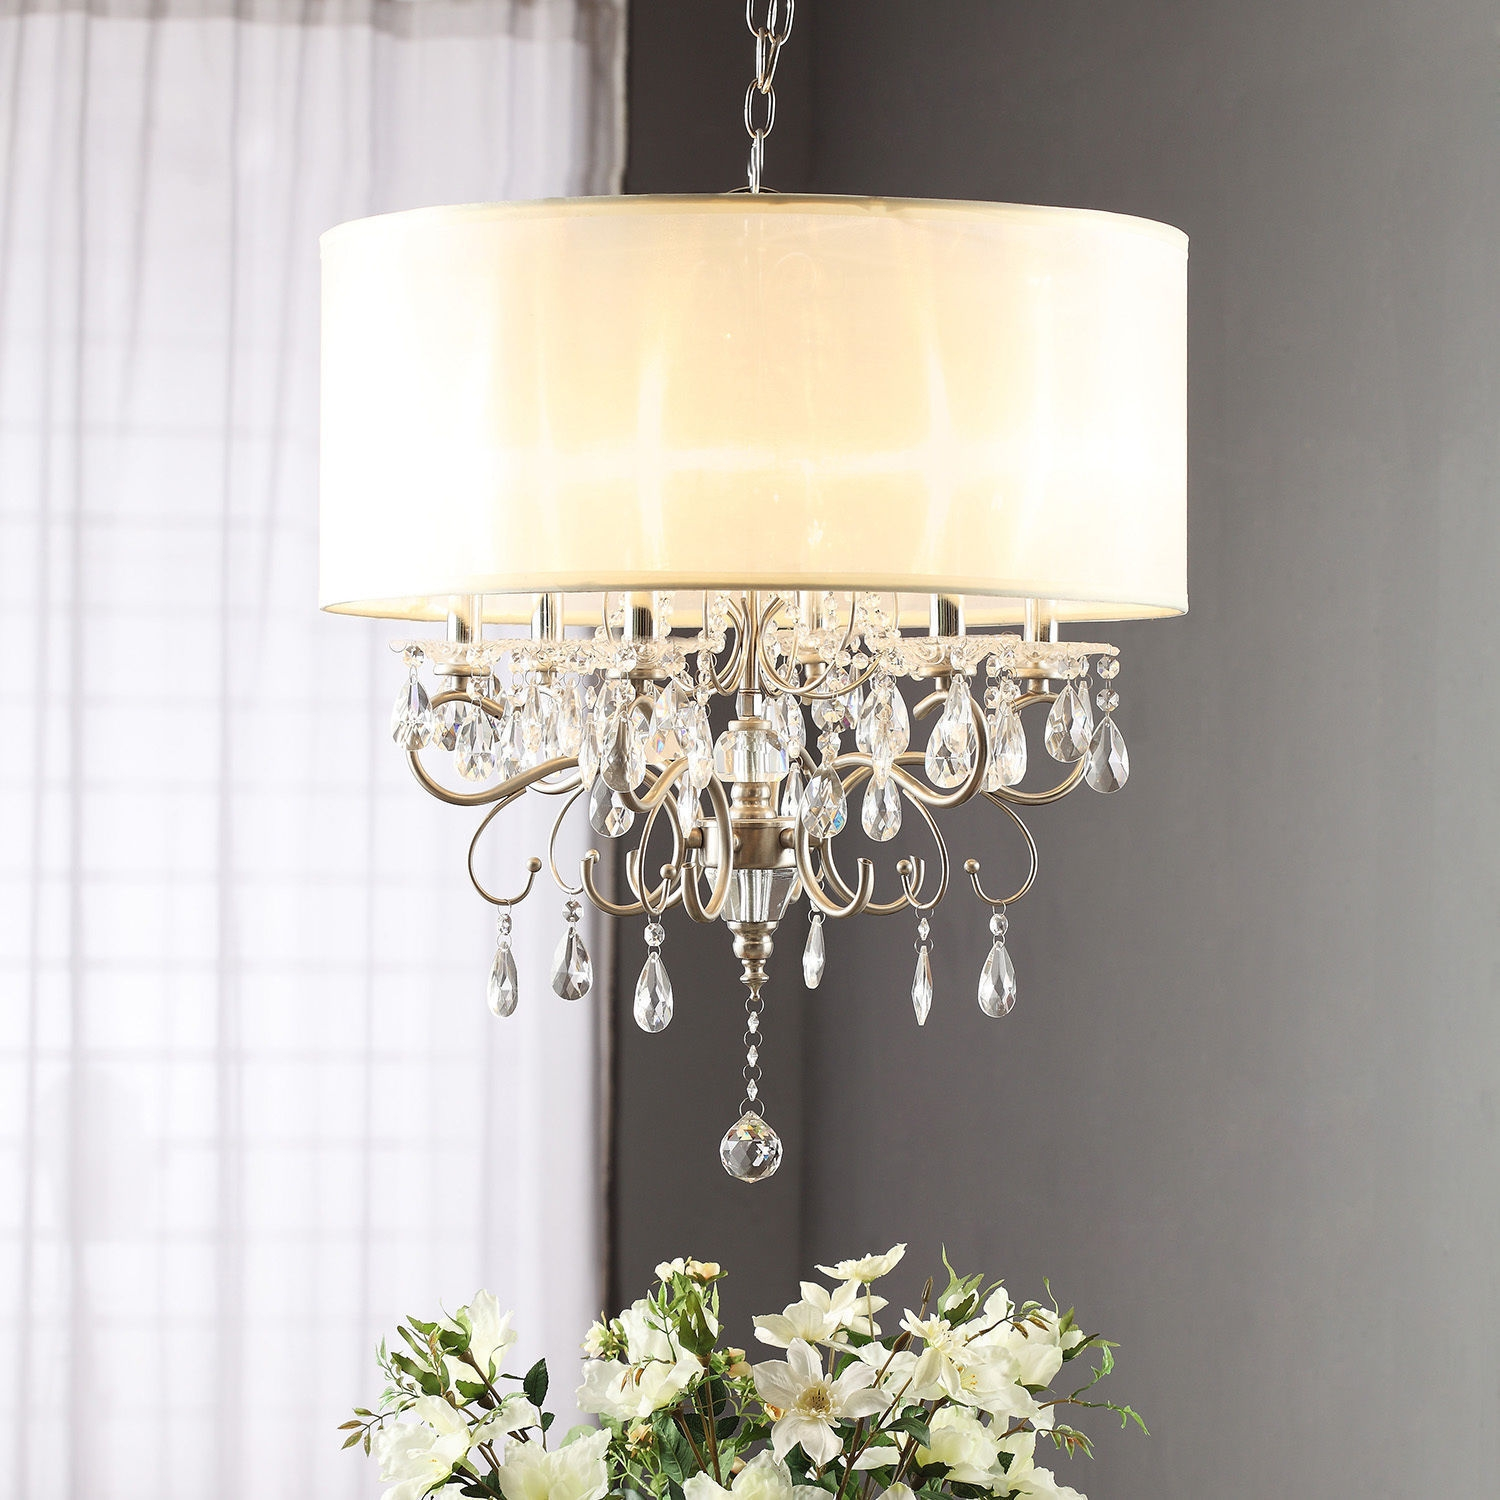 Top 10 Chandeliers Ebay Within Cream Chandeliers (View 1 of 12)